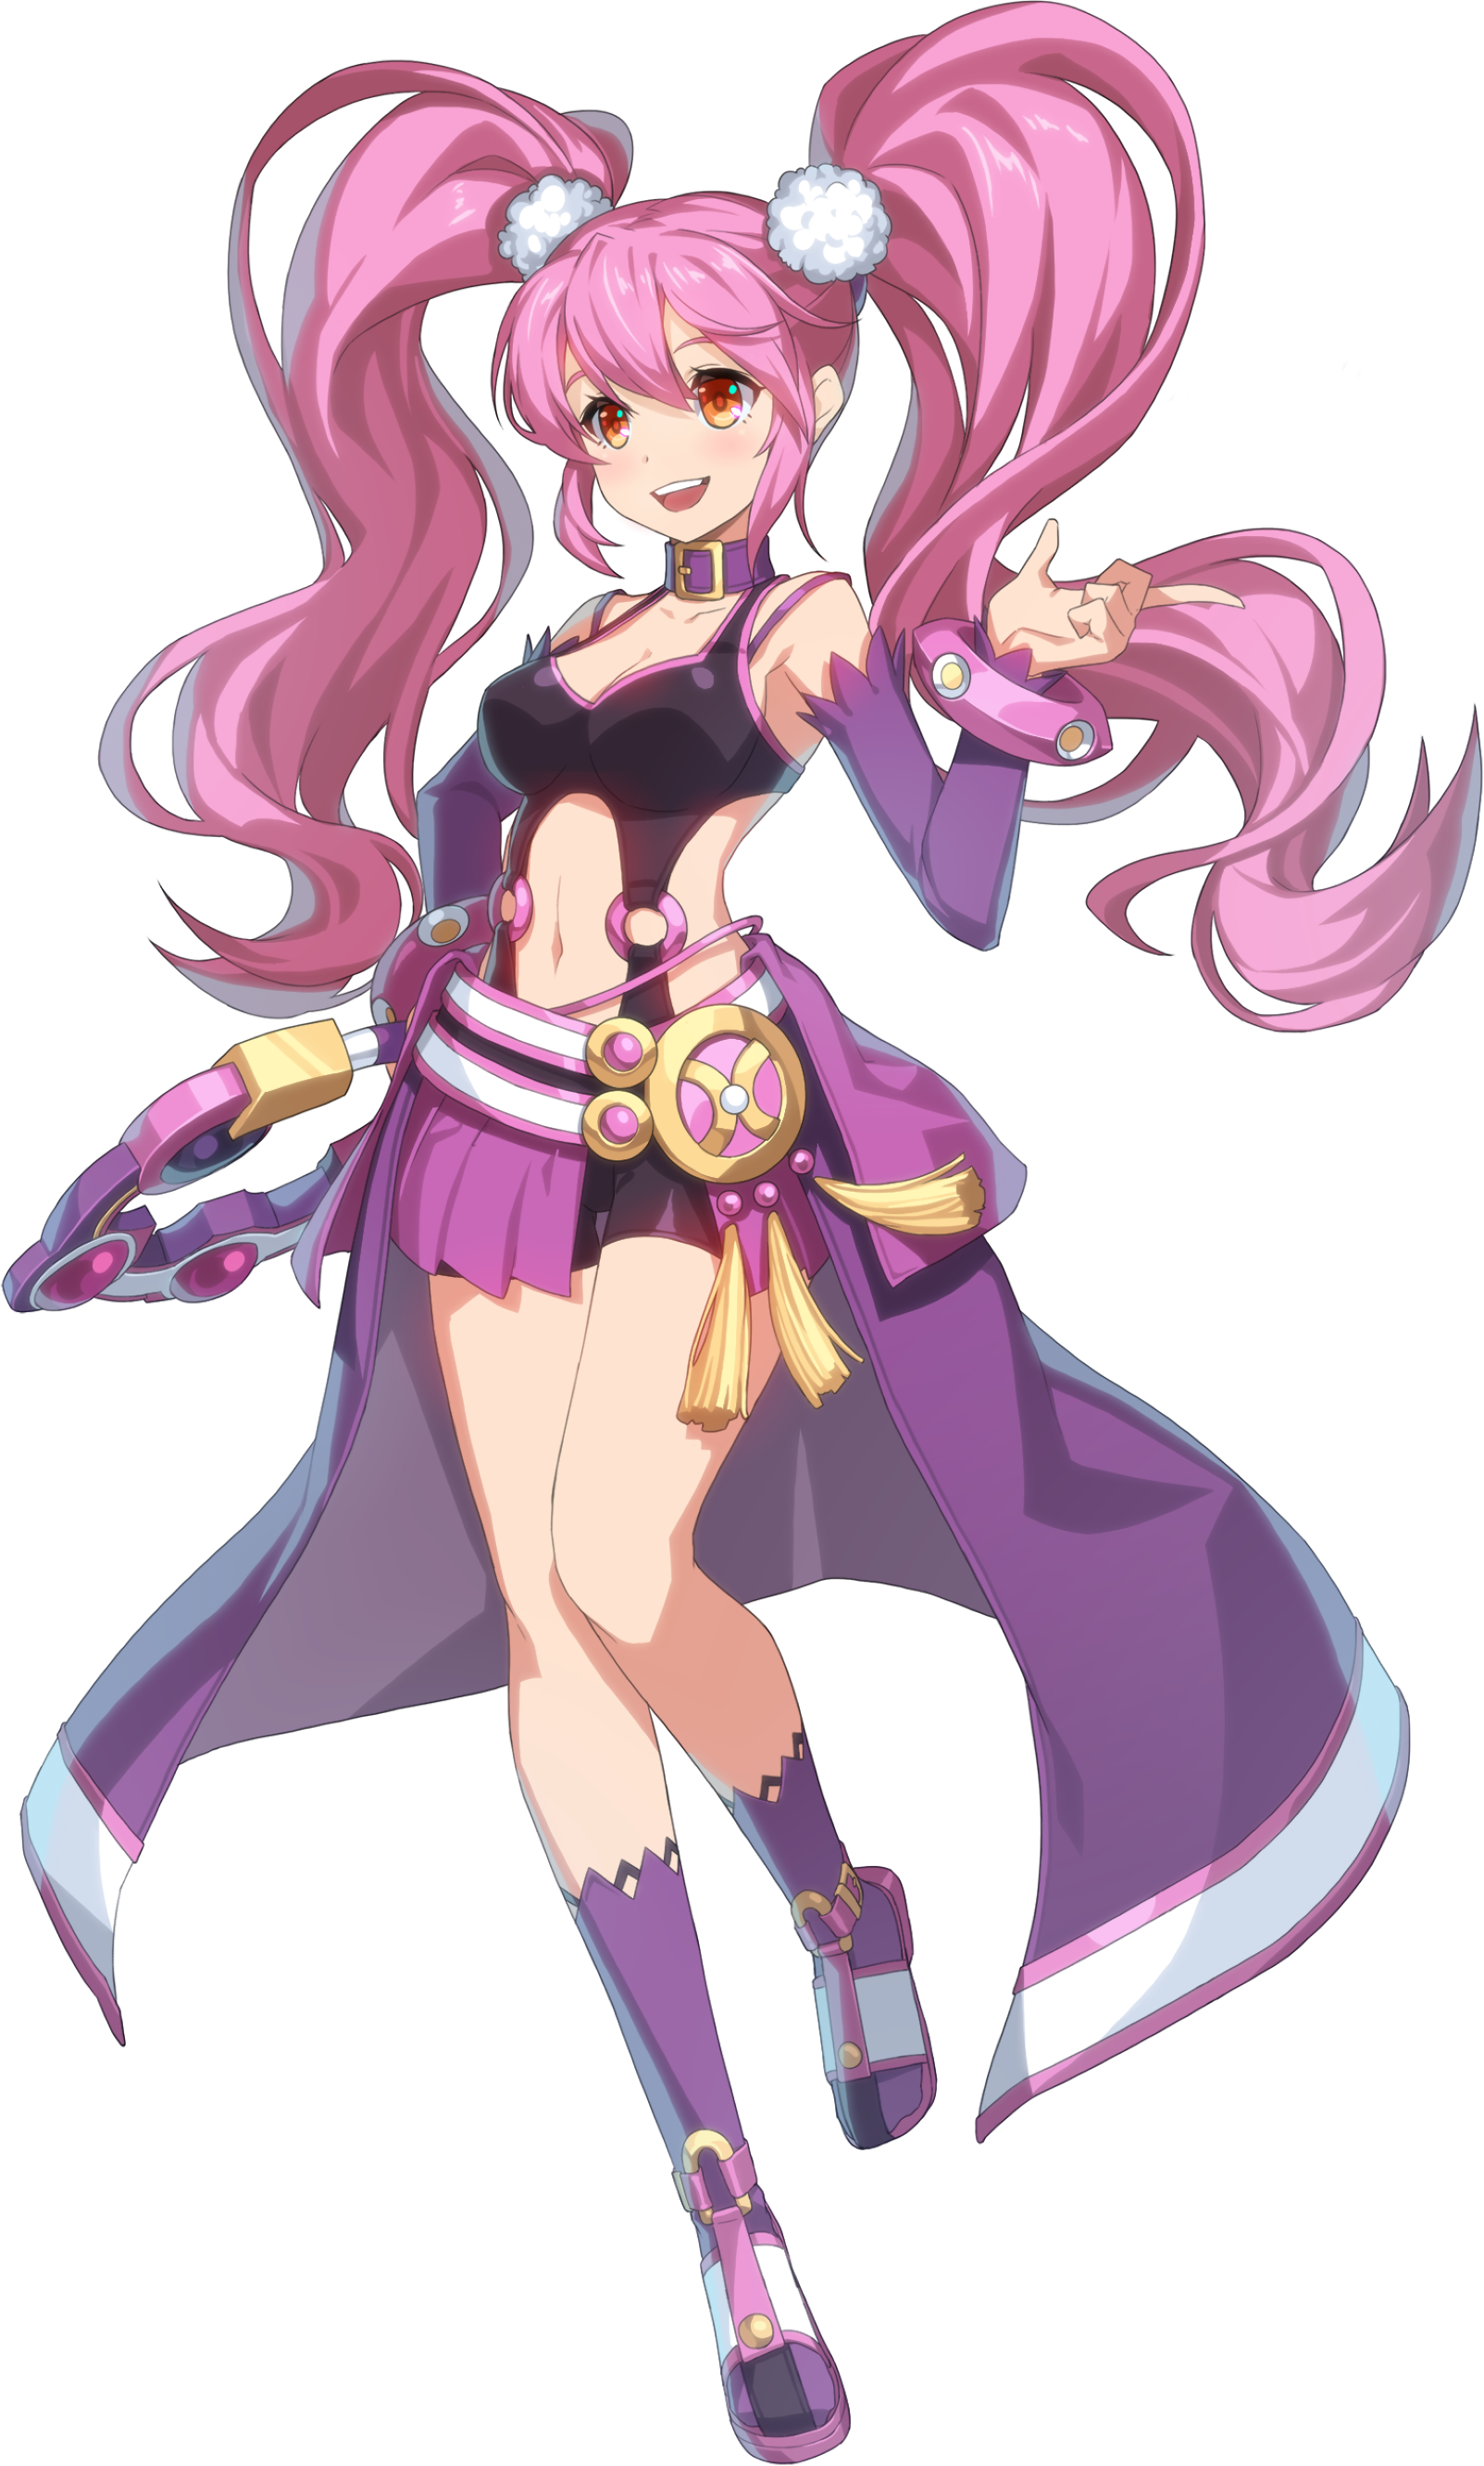 Amy/Grand Chase Dimensional Chaser | Grand Chase Wiki | FANDOM